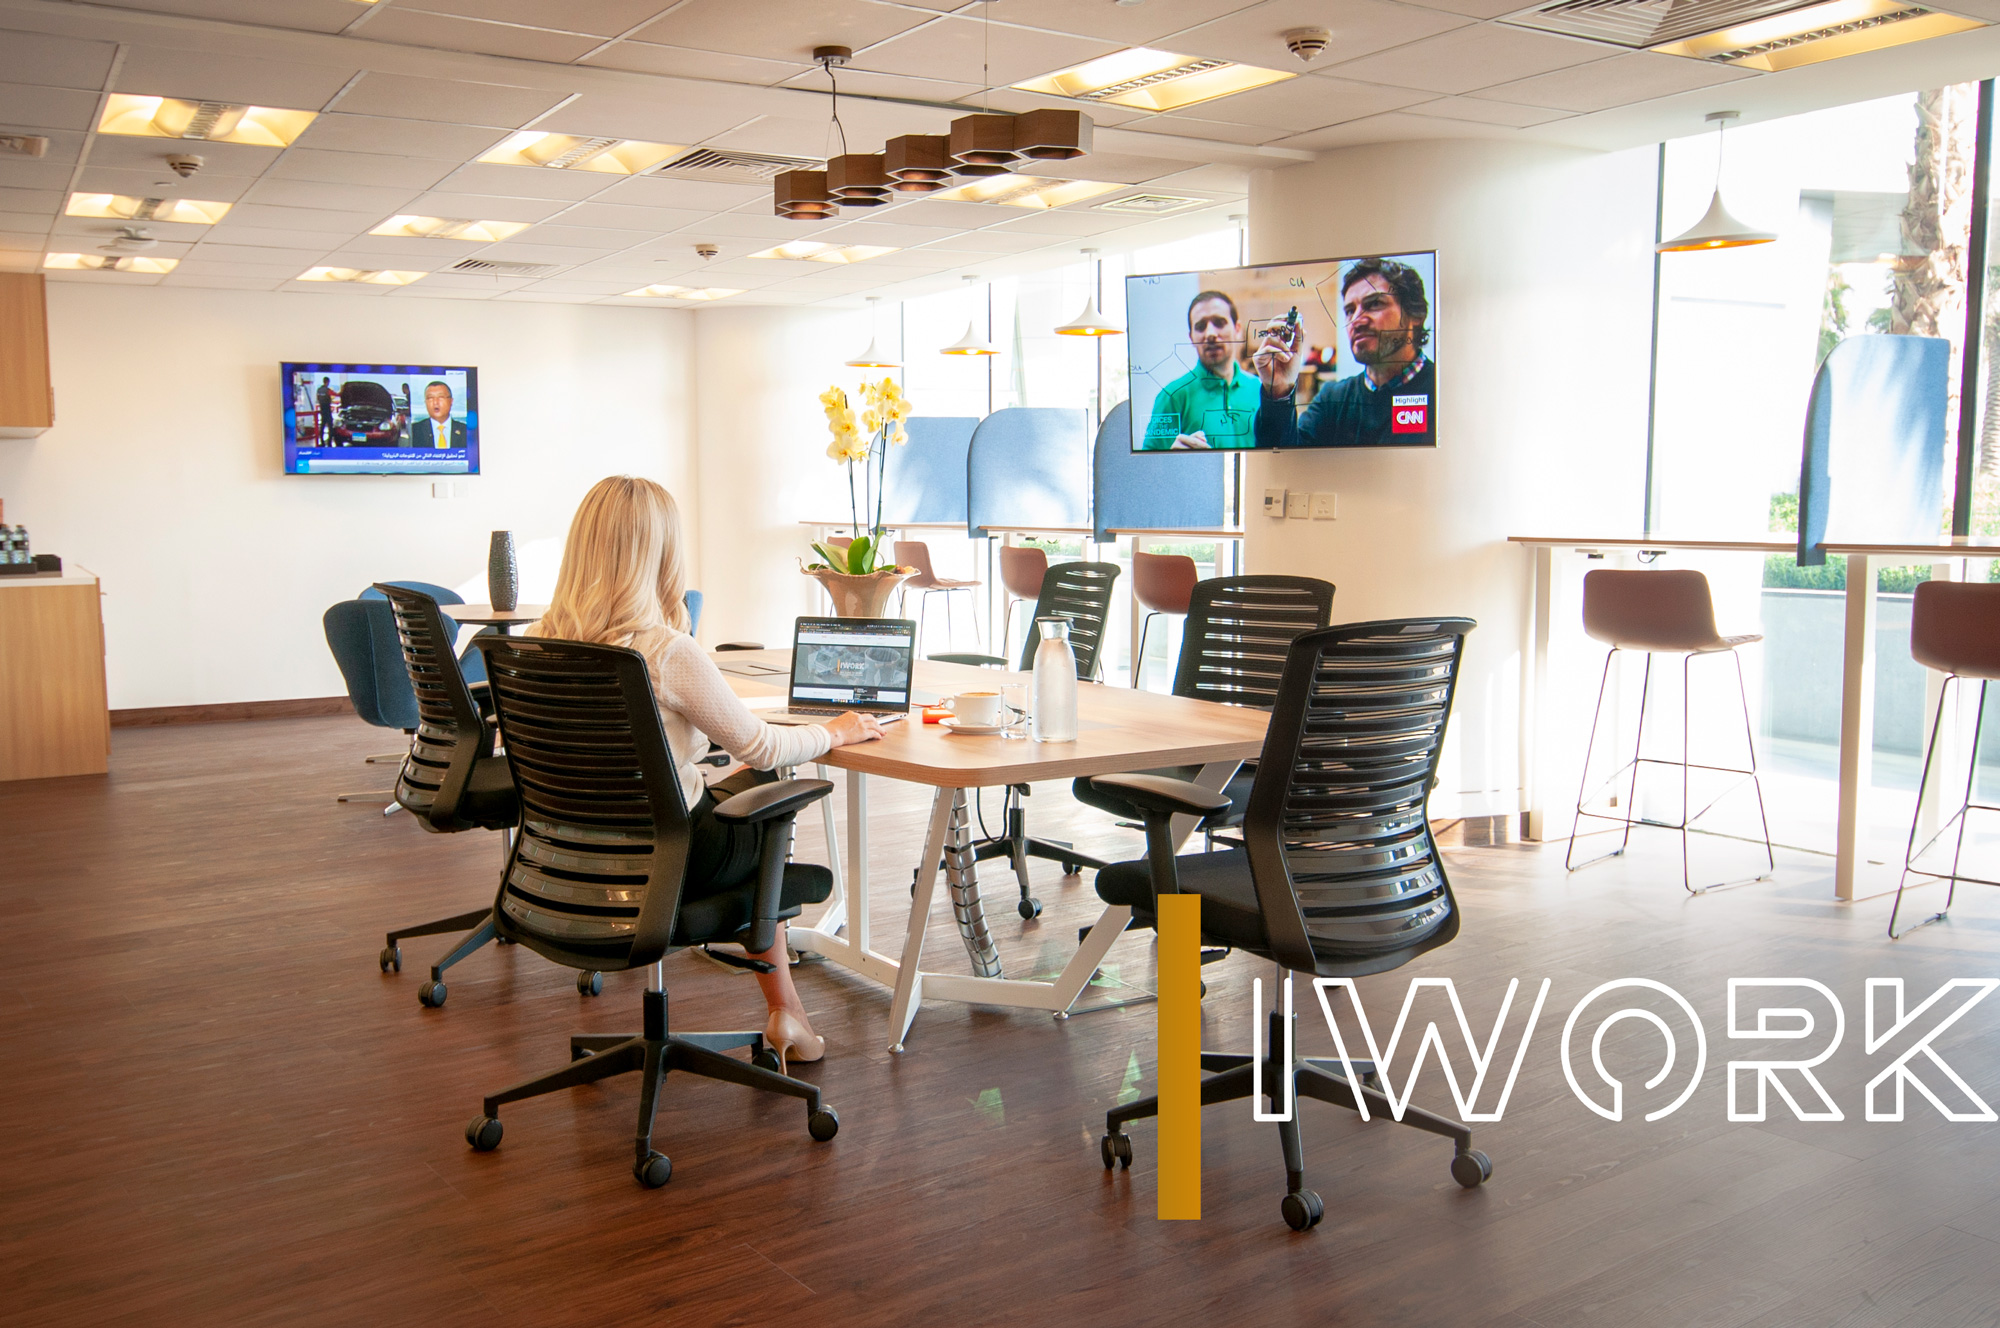 IWORK at InterContinental Residence Suites